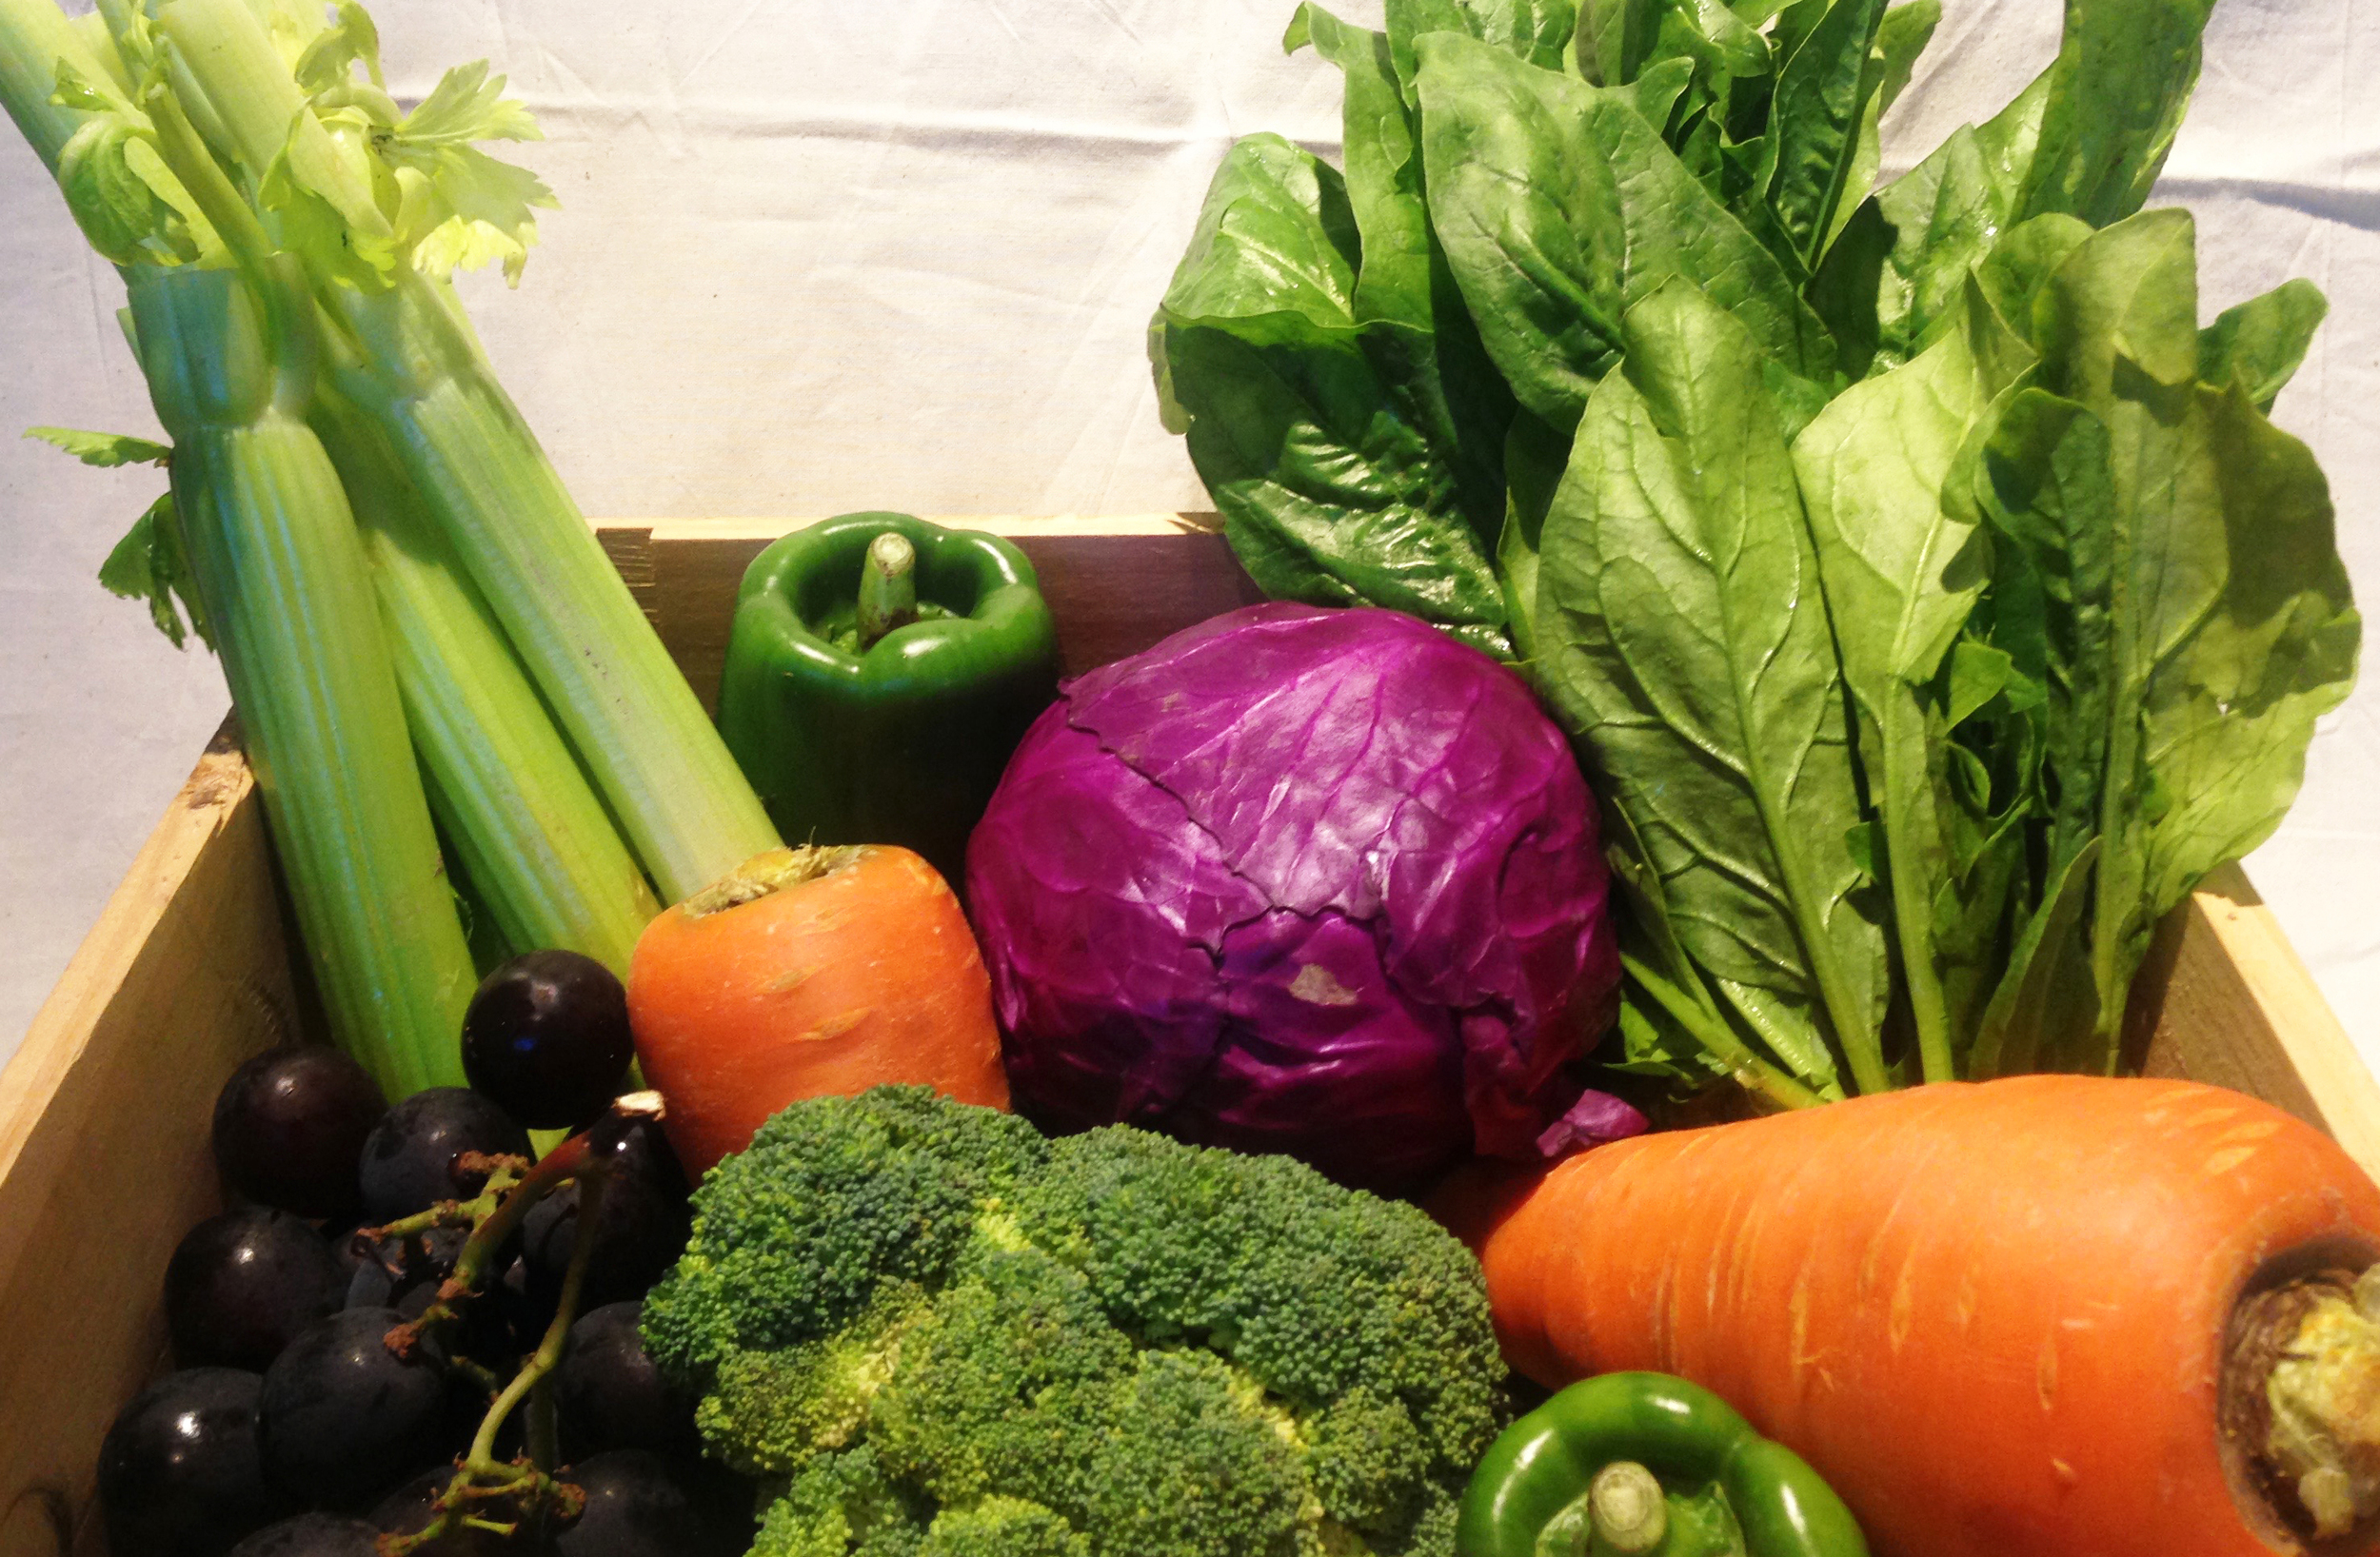 Research : Vegetable with strong vivid color in the market